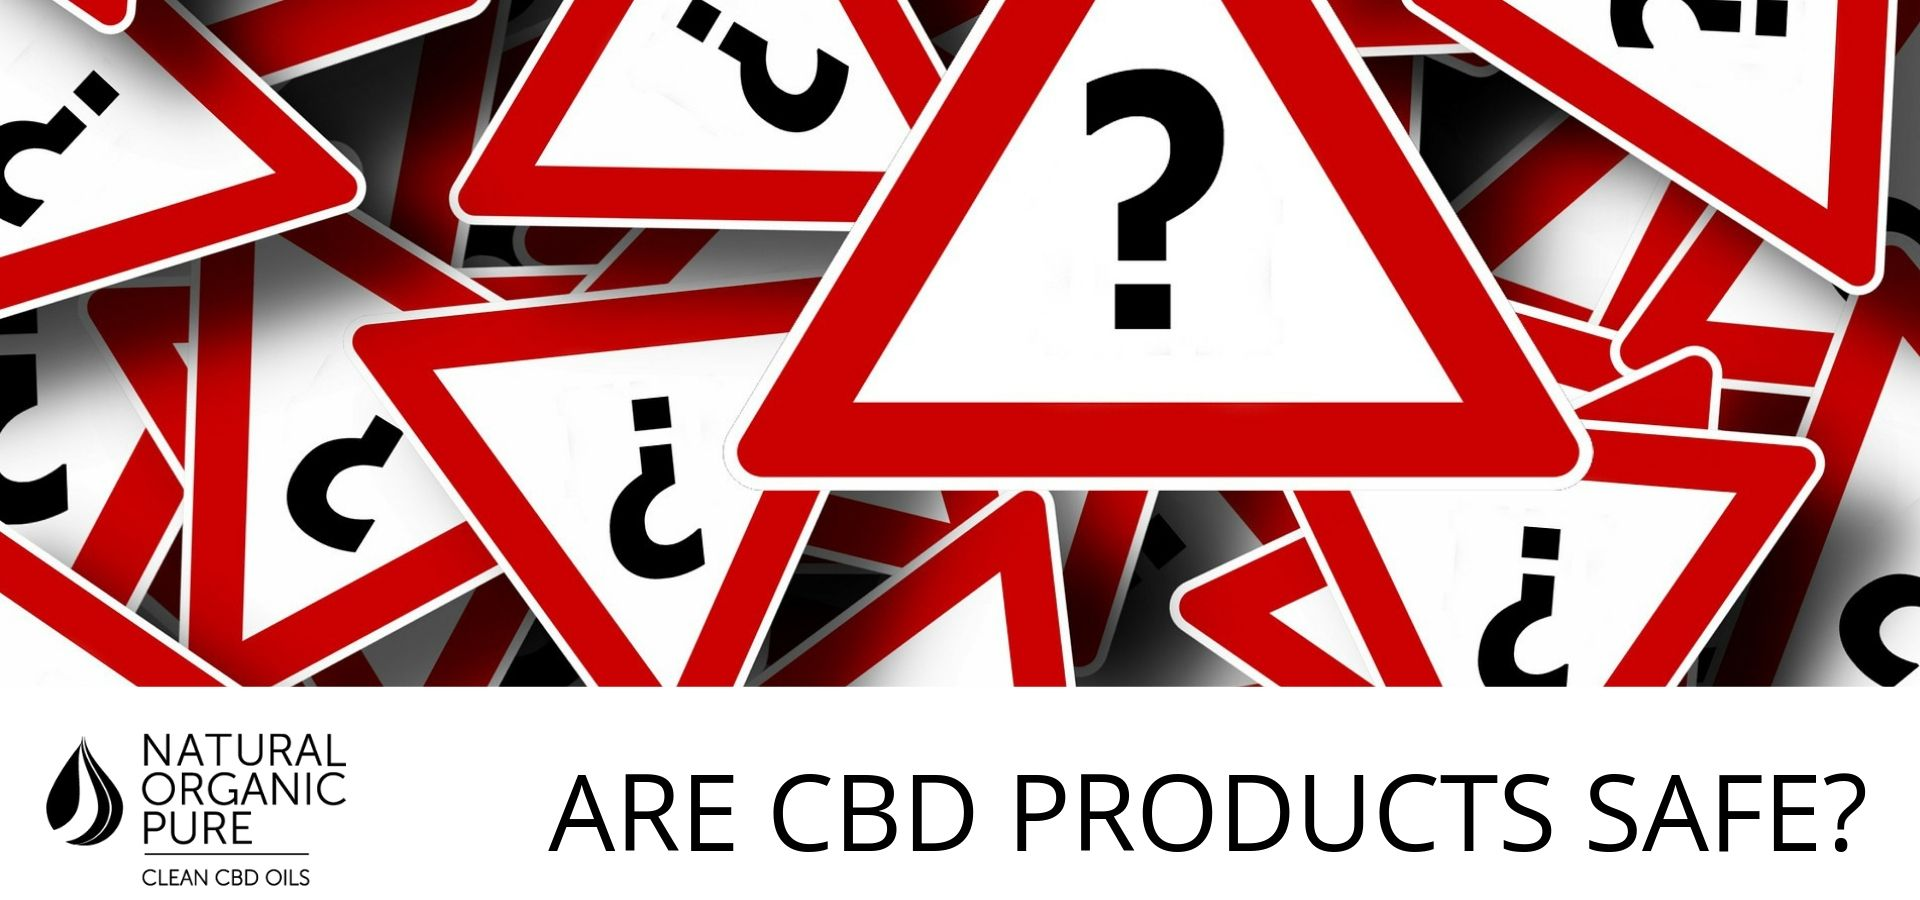 _are CBD products safe-Pile of hazard signs with questions marks_customer question for natural organic pure clean cbd oils-nopc oil